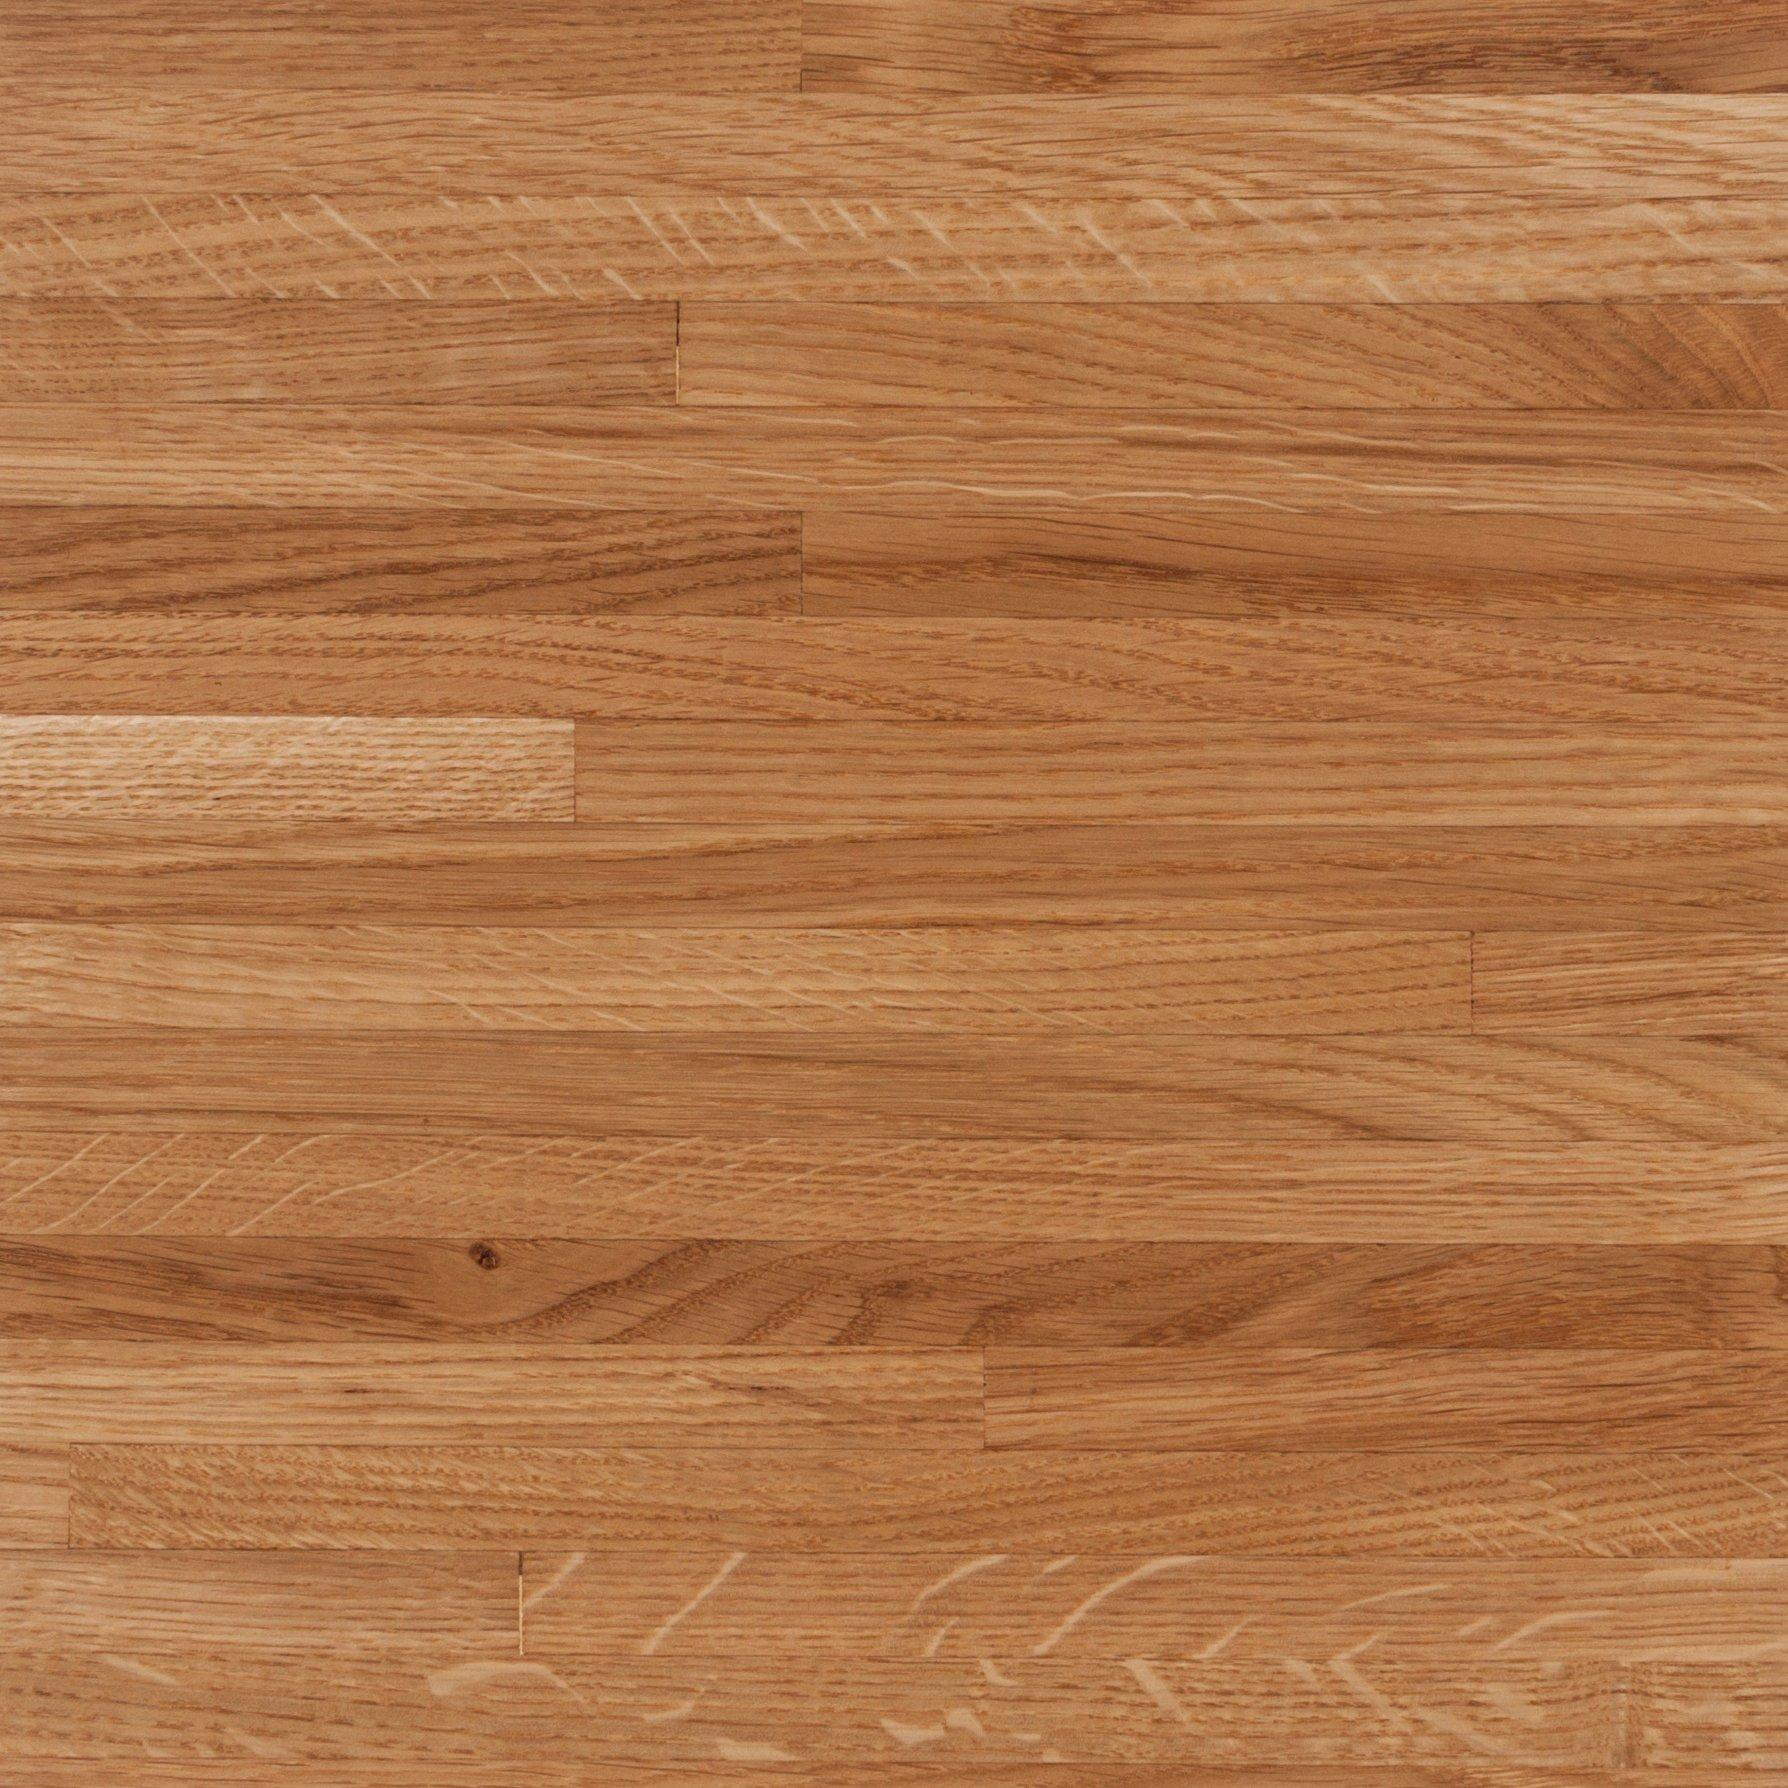 White Oak Butcher Block Countertop 12ft.   144in. X 25in.   100020627 |  Floor And Decor